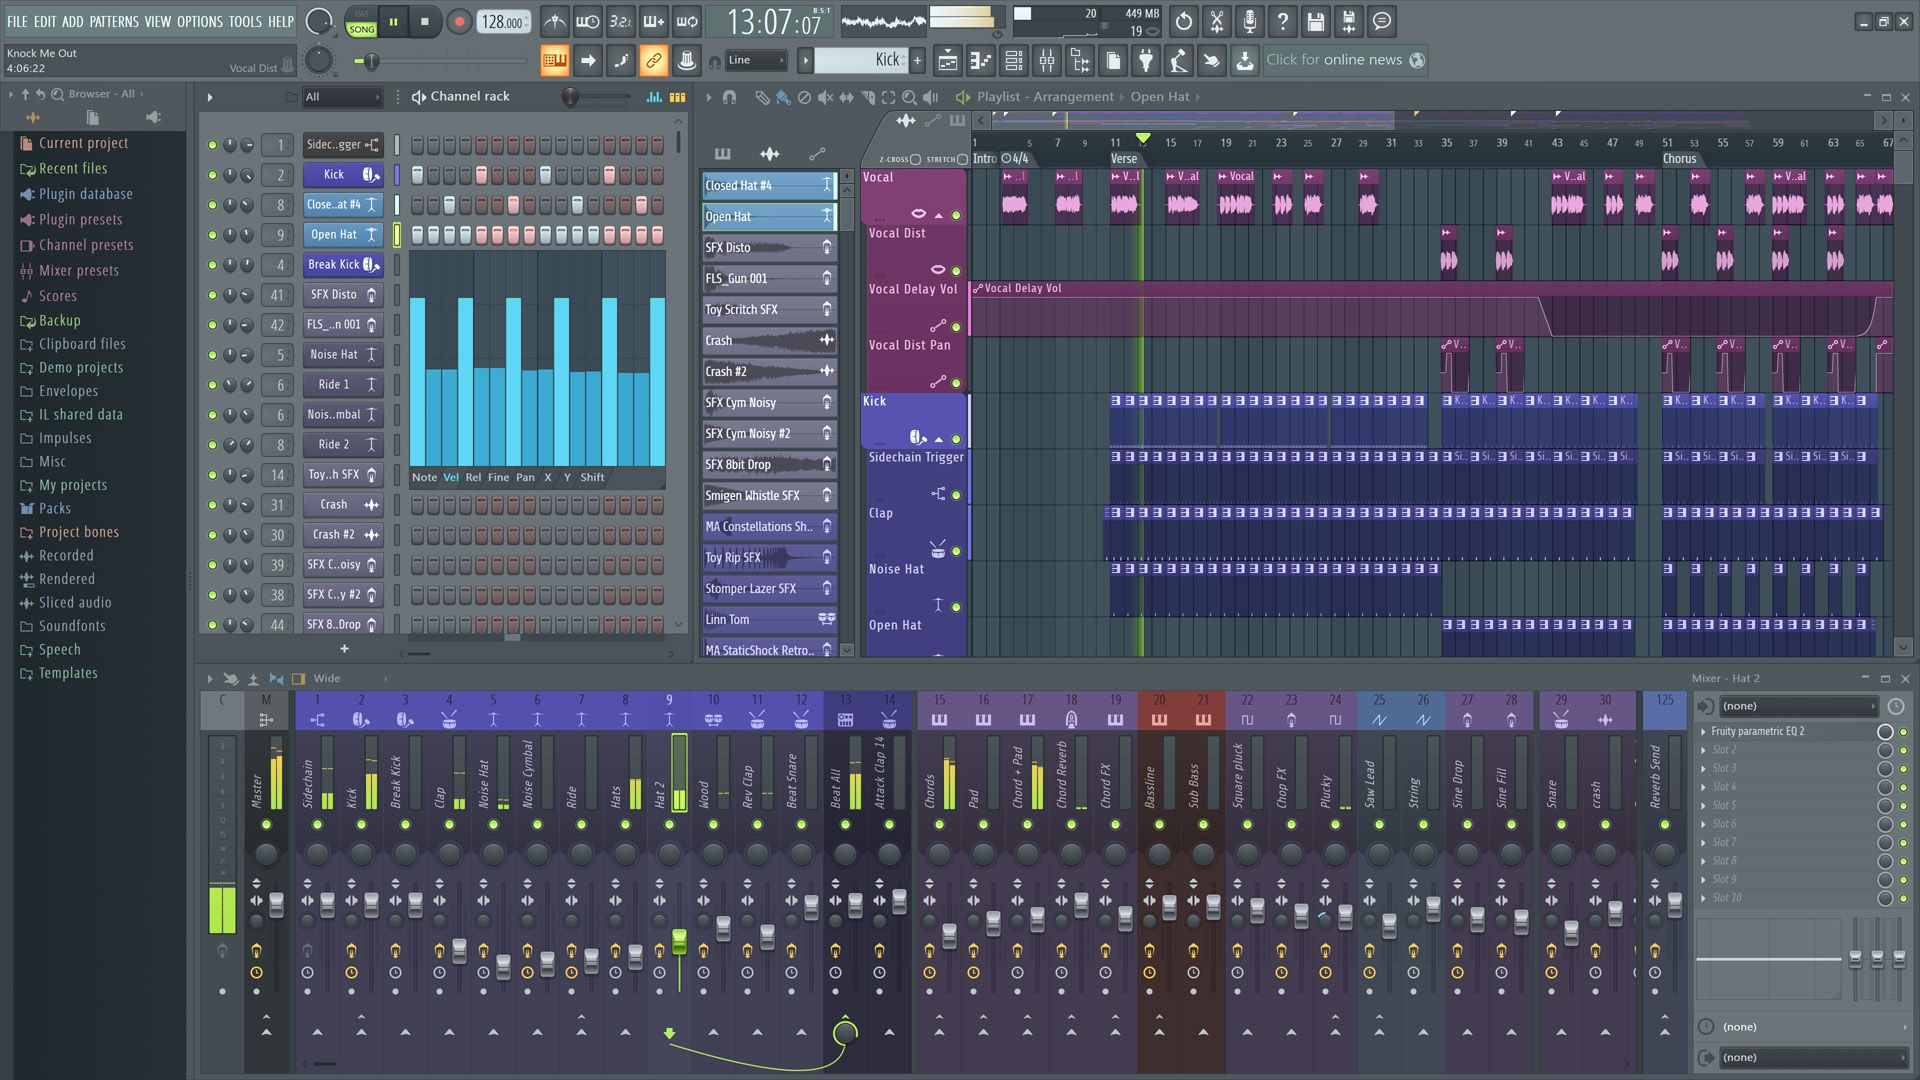 Fl studio for android cracked free games